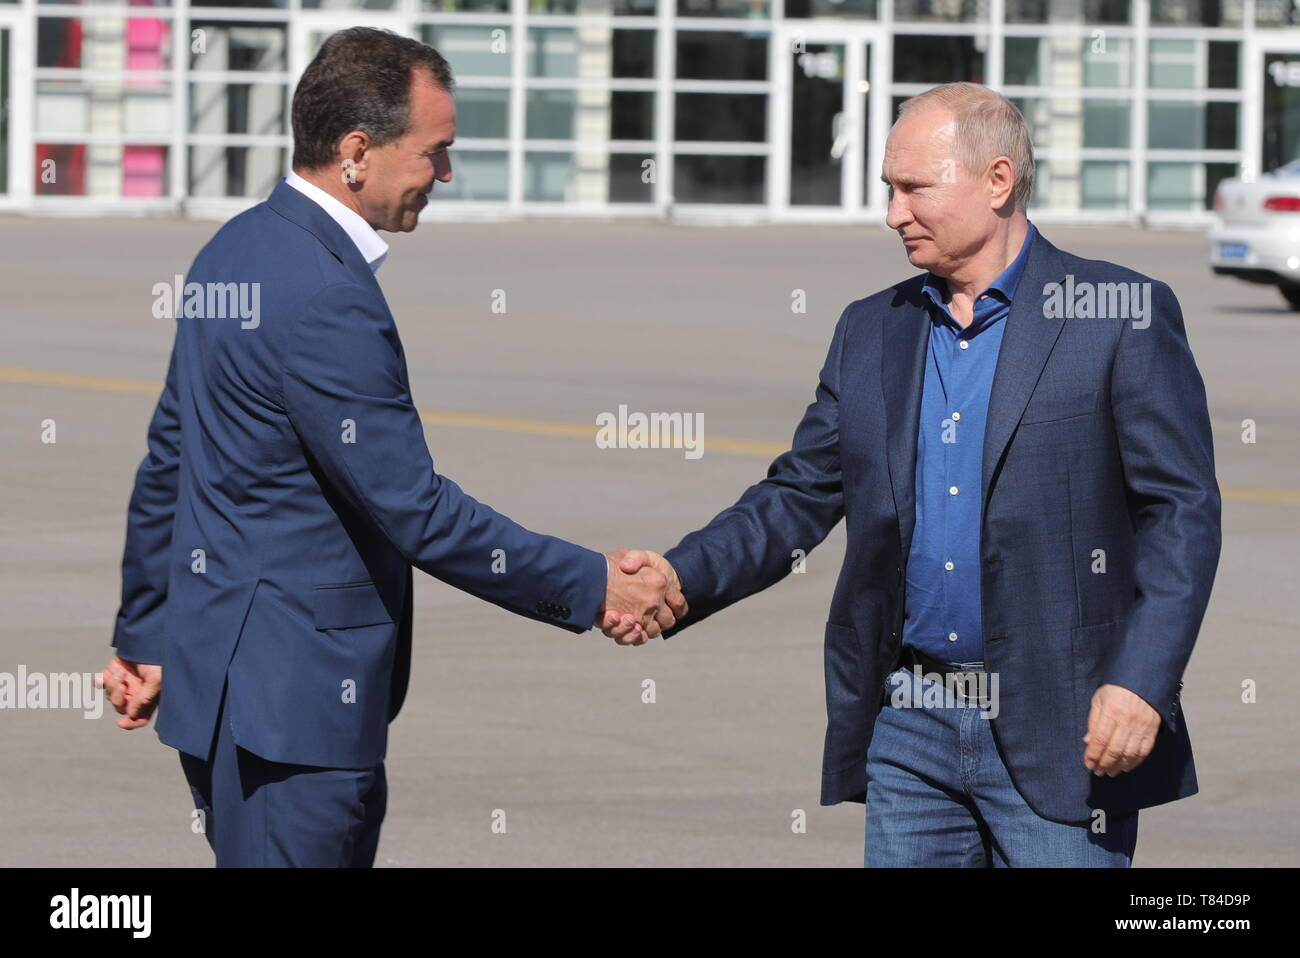 Sochi, Russia. 10th May, 2019. SOCHI, RUSSIA - MAY 10, 2019: Krasnodar Territory Governor Veniamin Kondratyev (L) and Russia's President Vladimir Putin shake hands as they visit the Sirius Education Centre. Mikhail Klimentyev/Russian Presidential Press and Information Office/TASS Credit: ITAR-TASS News Agency/Alamy Live News - Stock Image